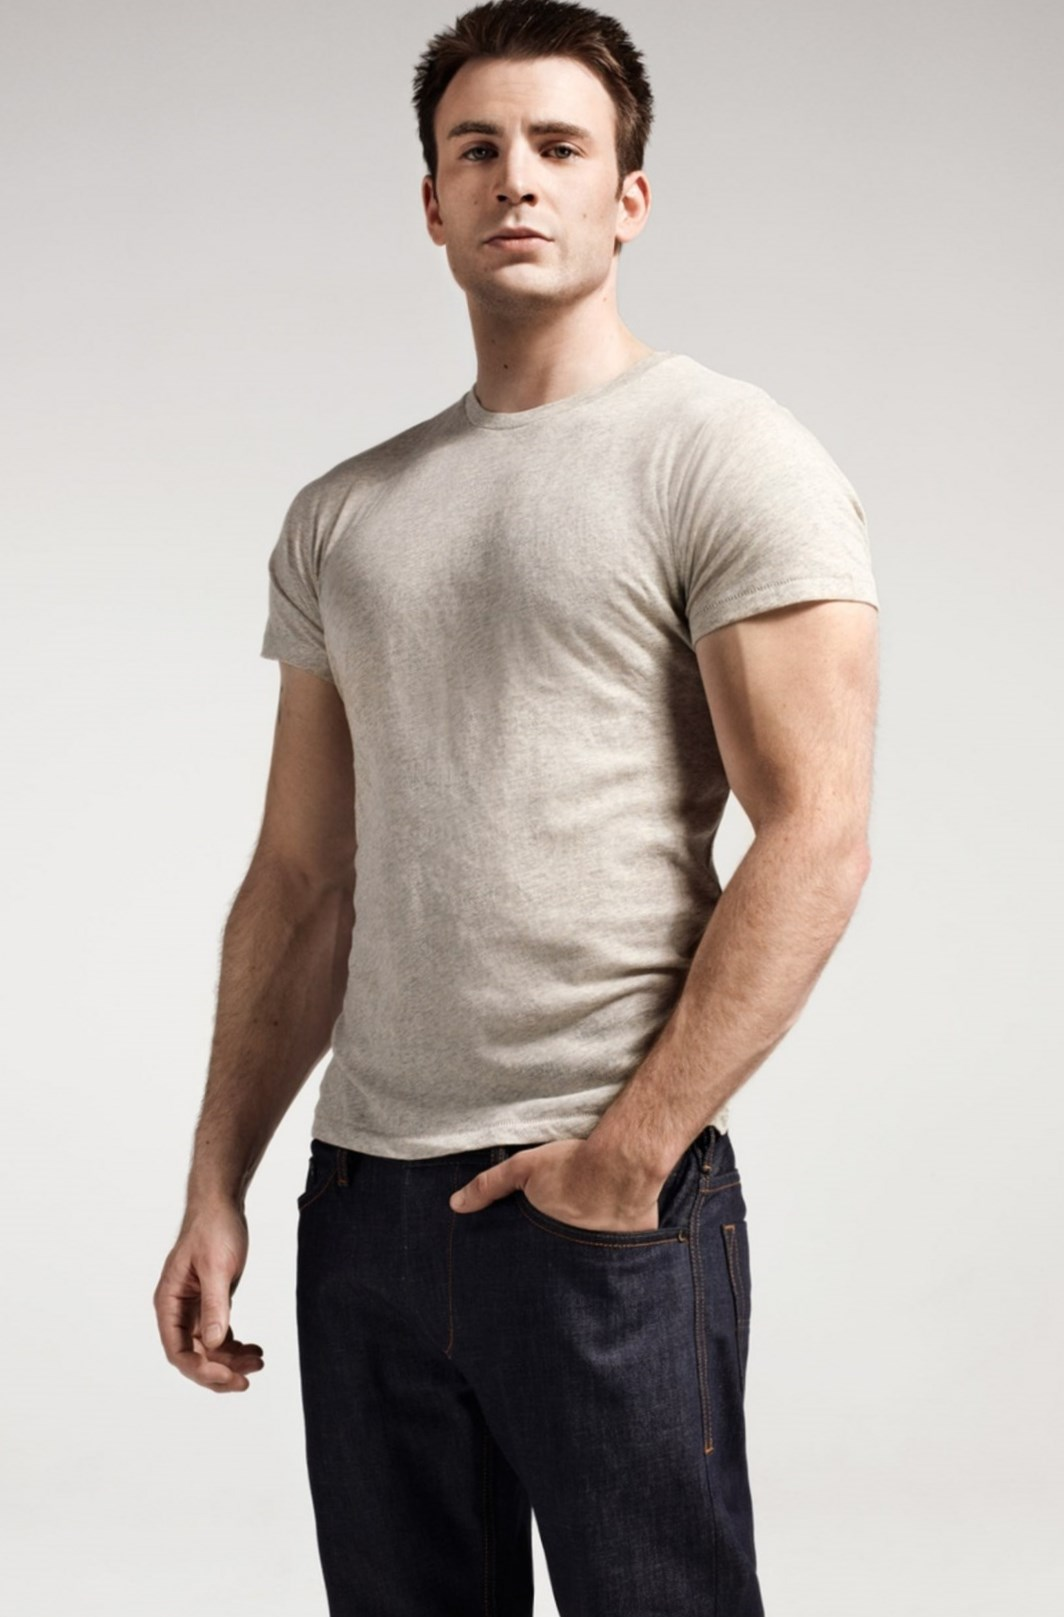 Chris Evans weight, height and age. We know it all!